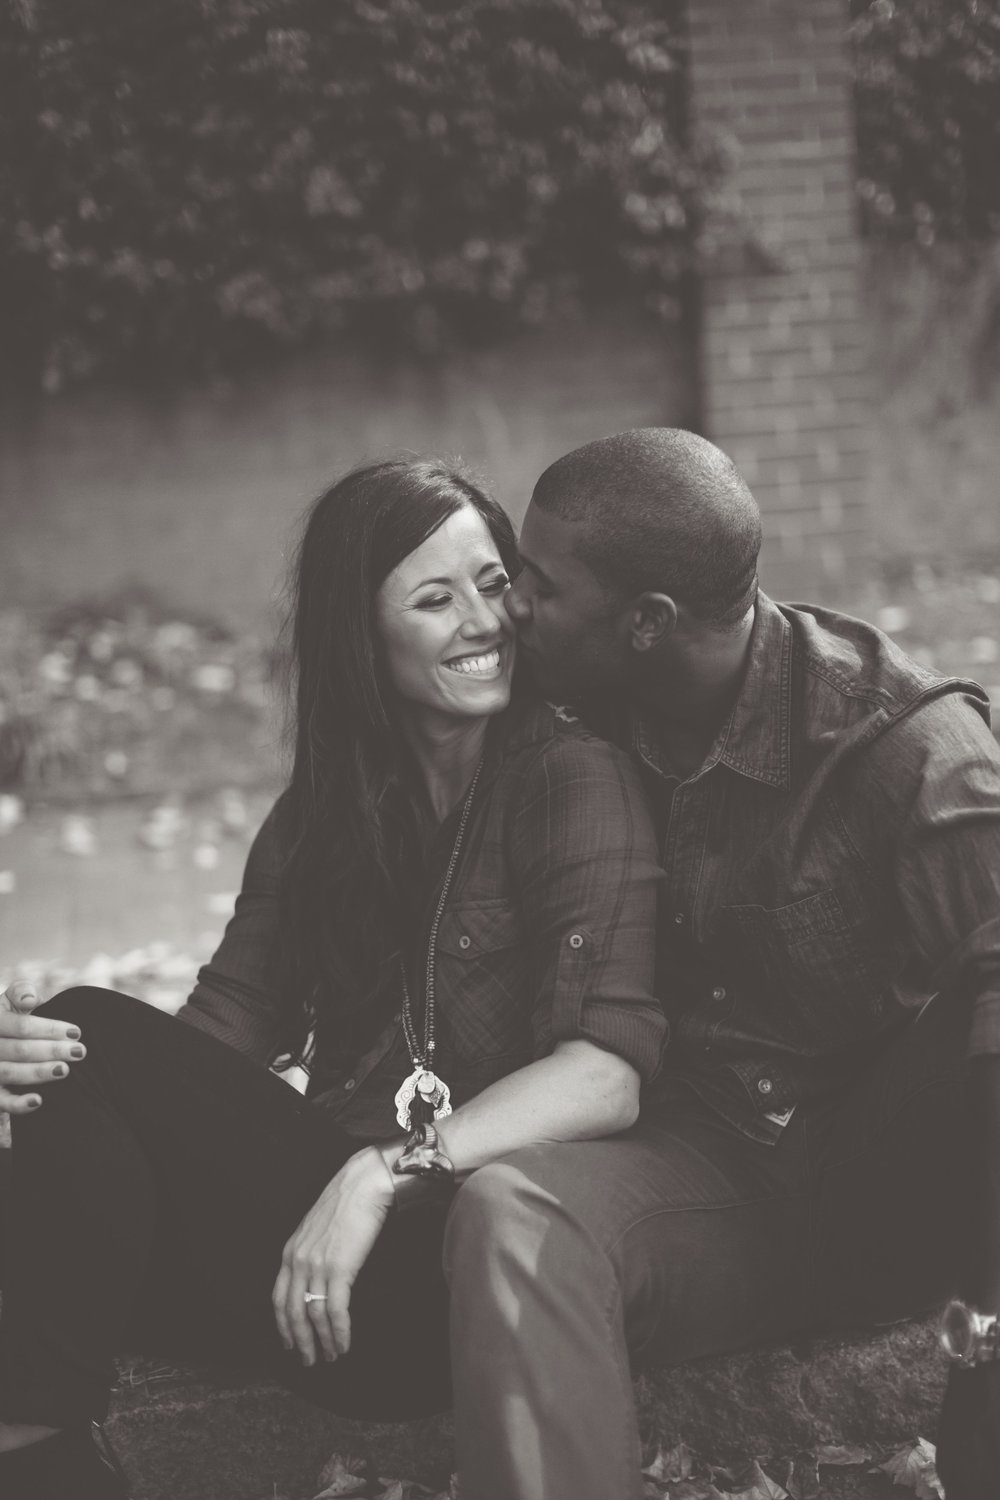 View More: http://laurenrosenauphoto.pass.us/breezeandmontel